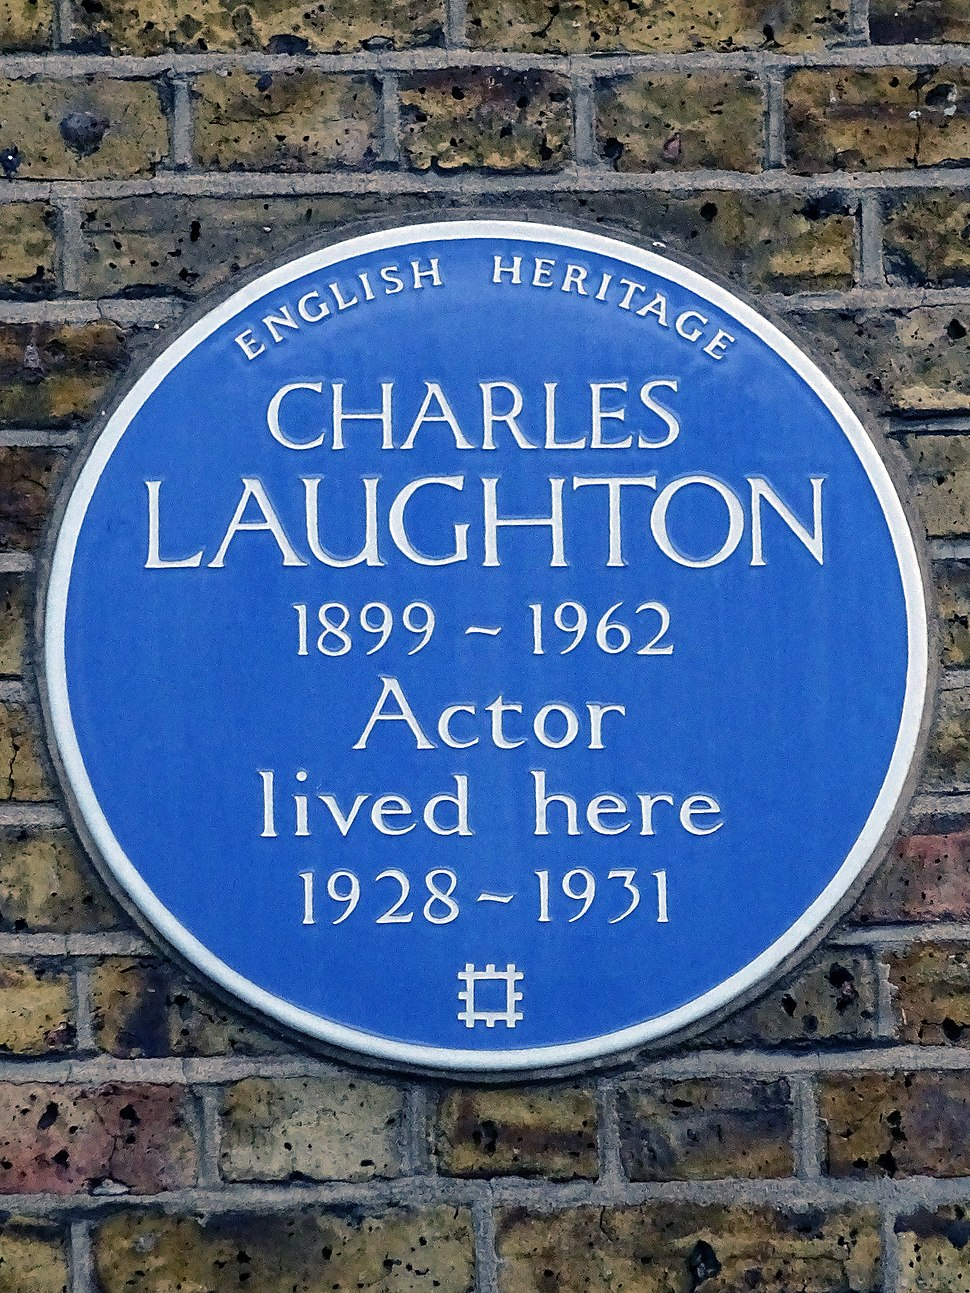 Charles Laughton 1899-1962 Actor lived here 1928-1931